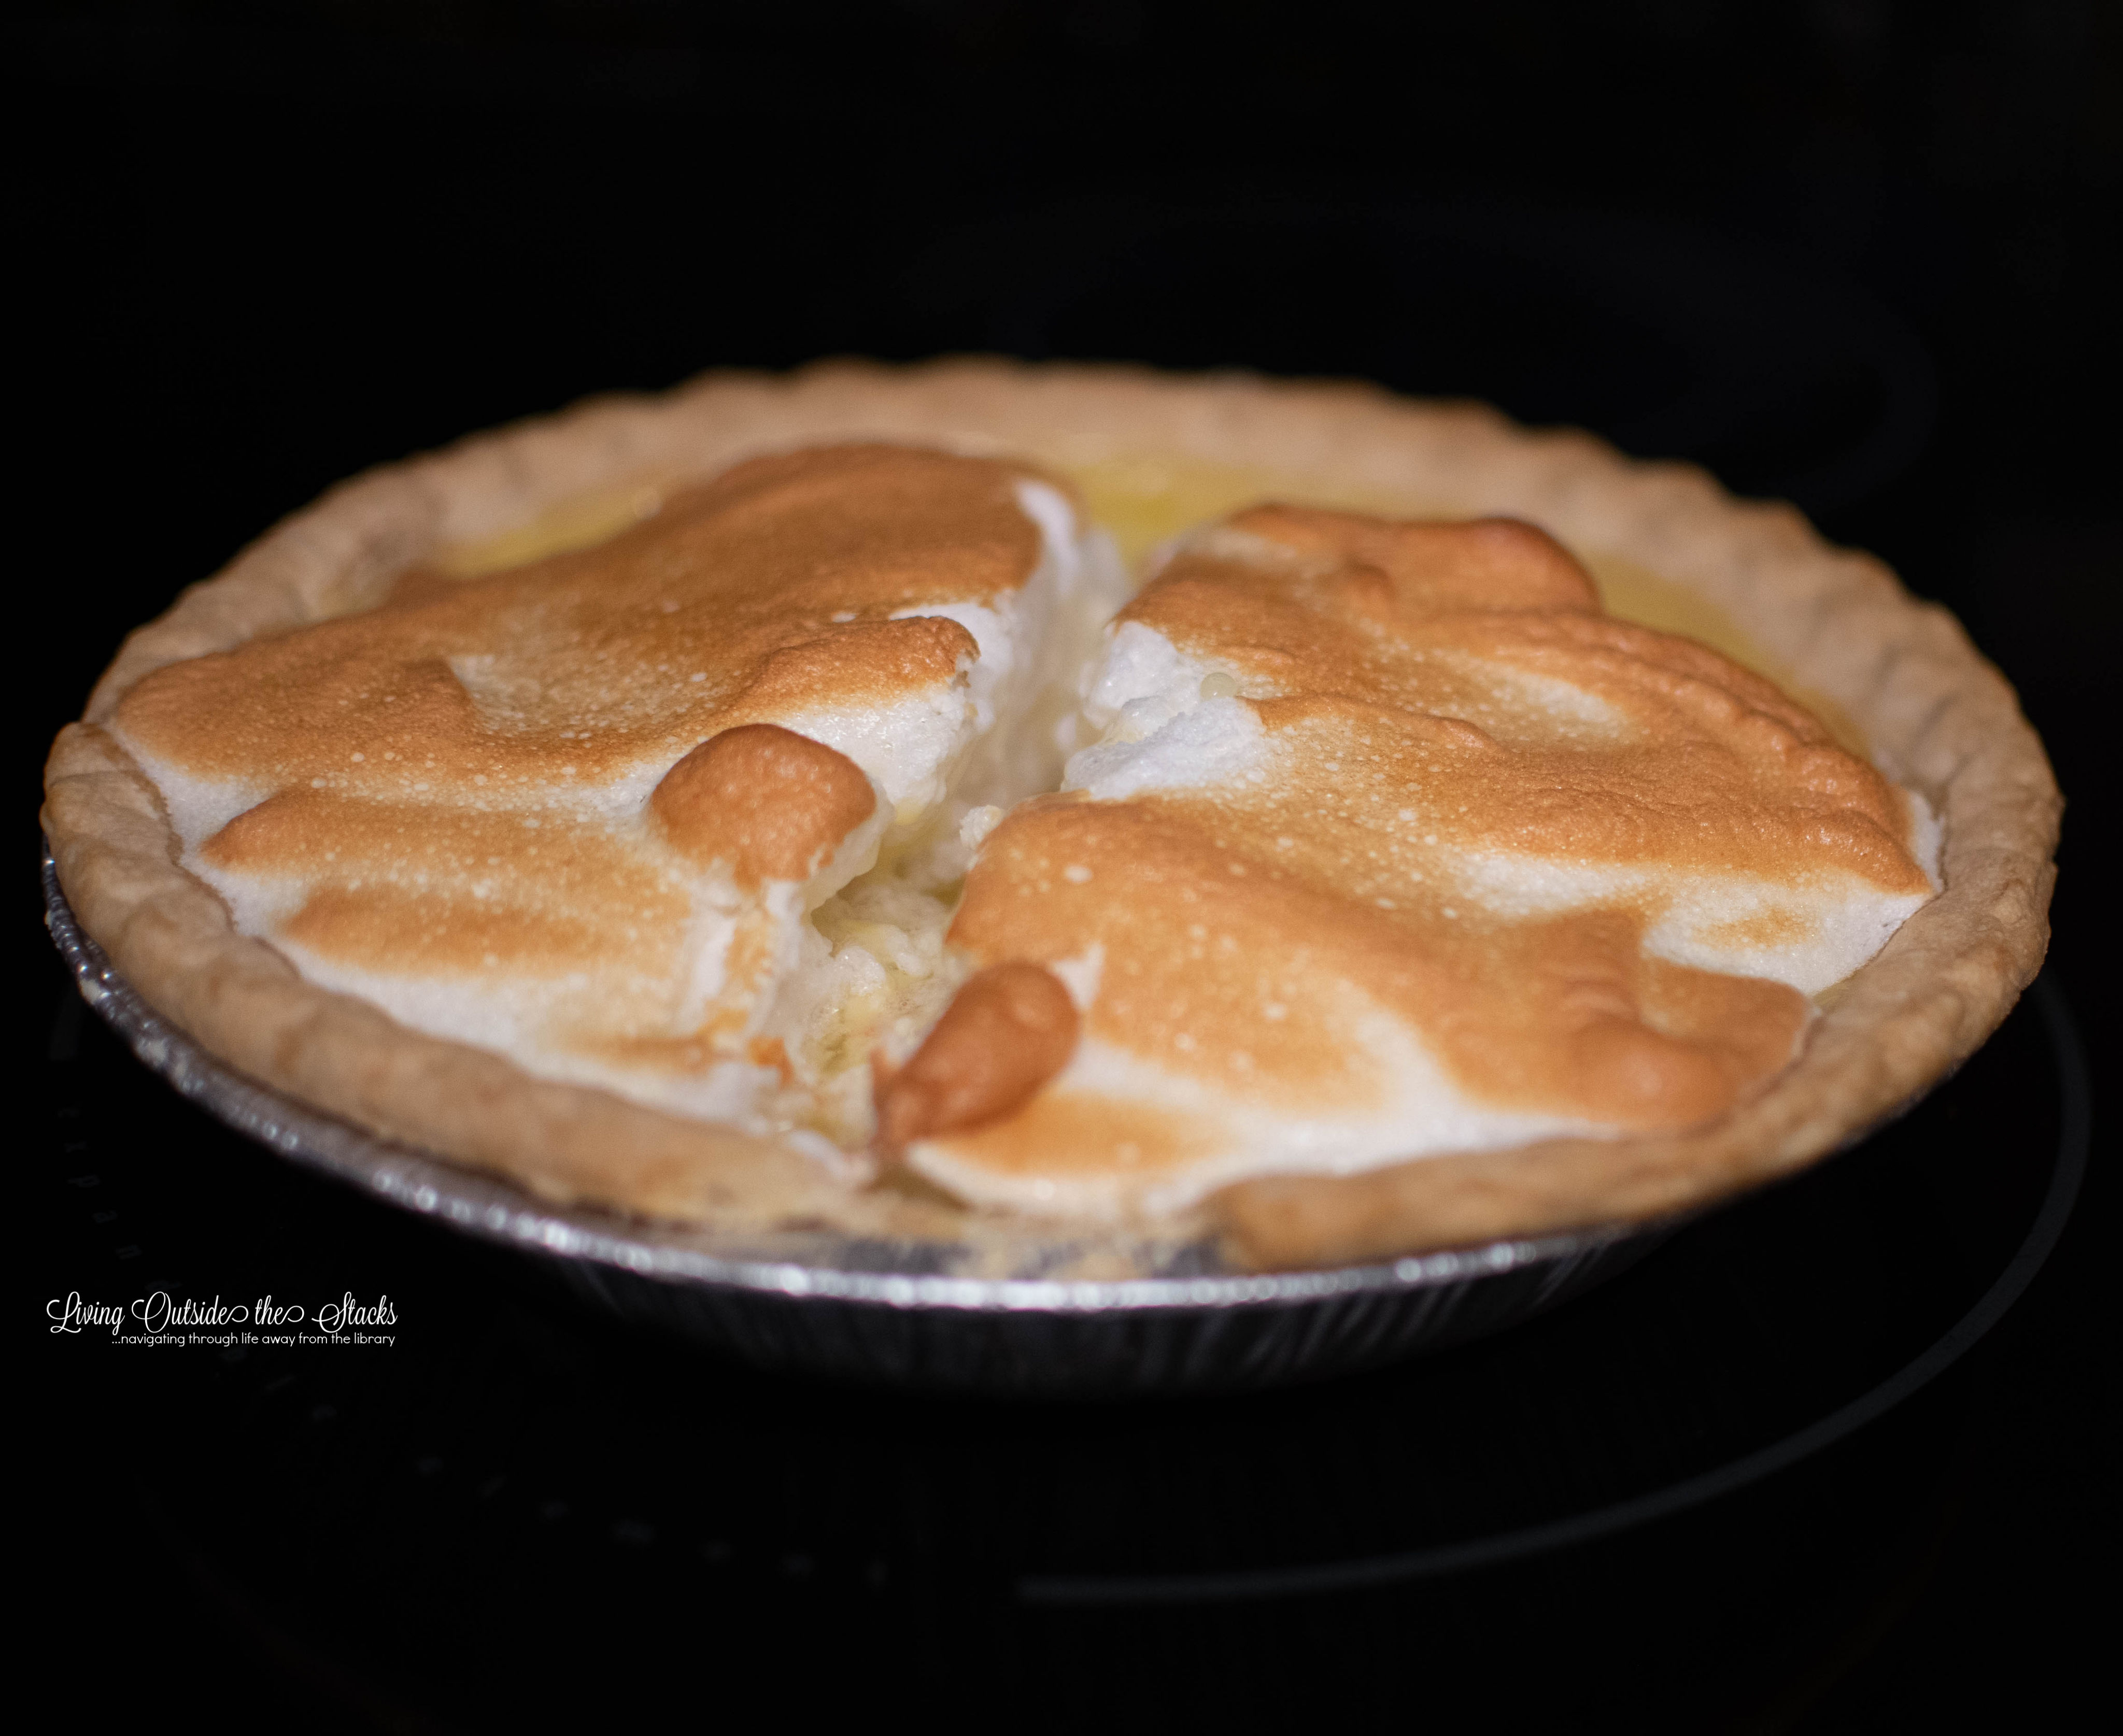 Lemon Meringue Pie {living outside the stacks} #CoffeeAndPieChat